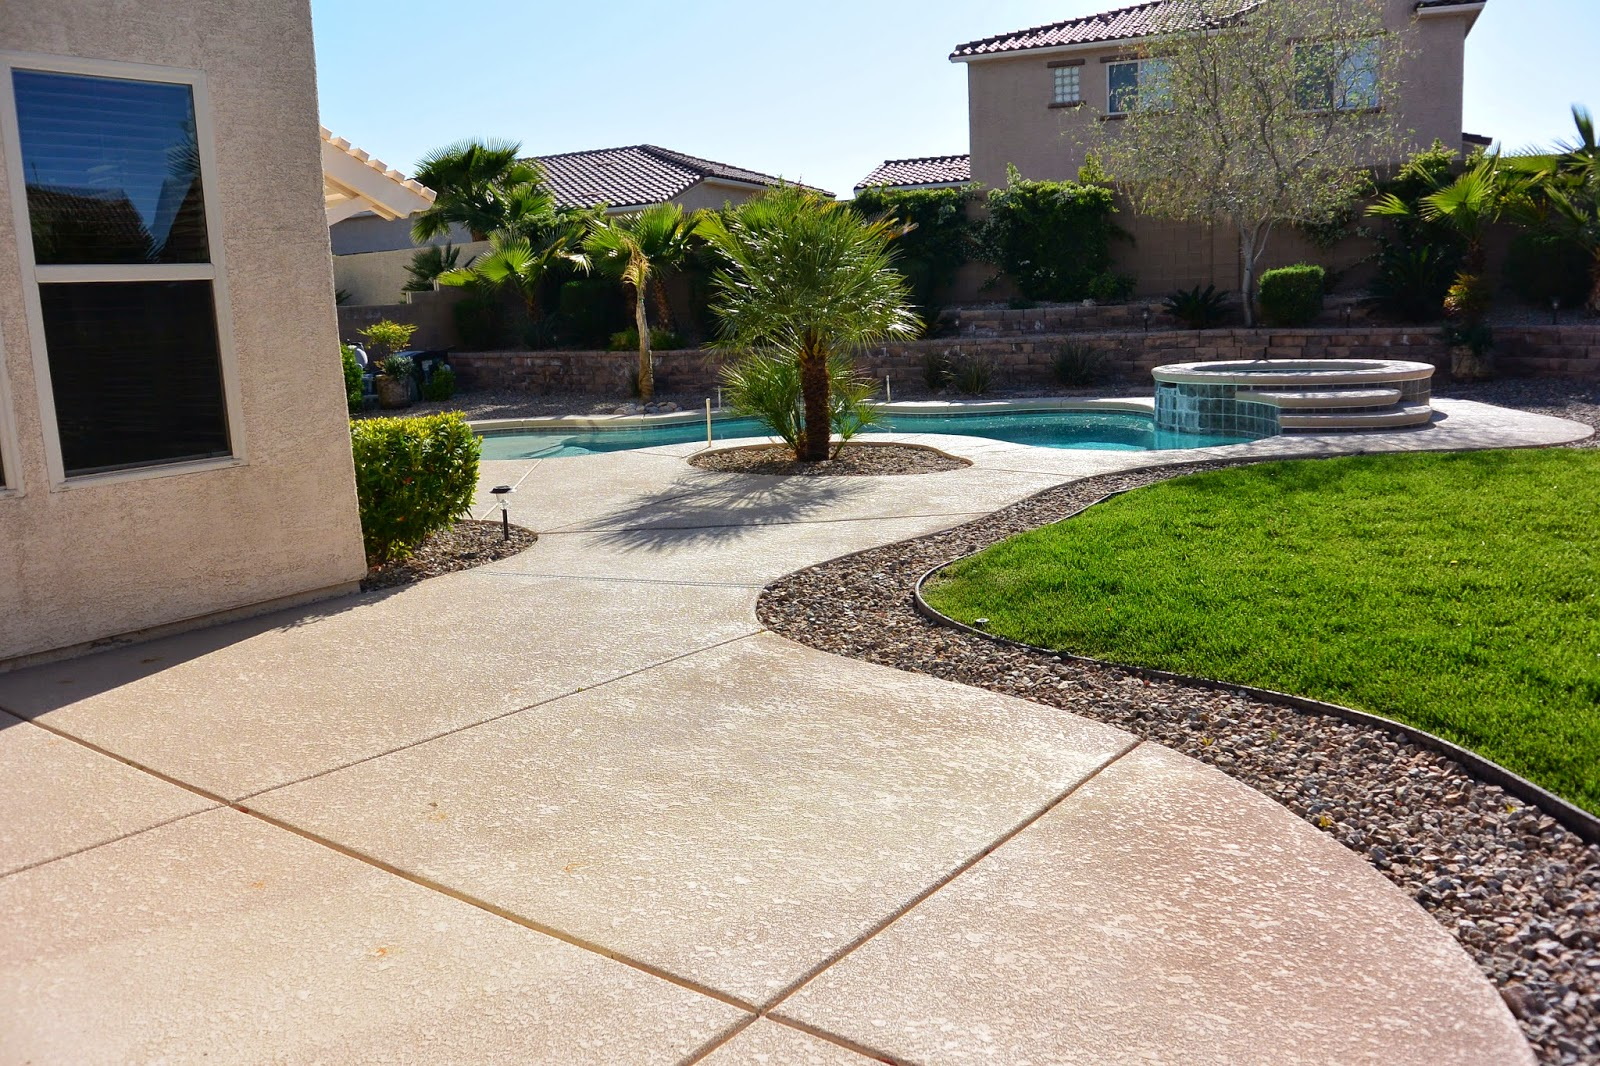 las vegas luxury homes nevada trails pool home for sale in las vegas